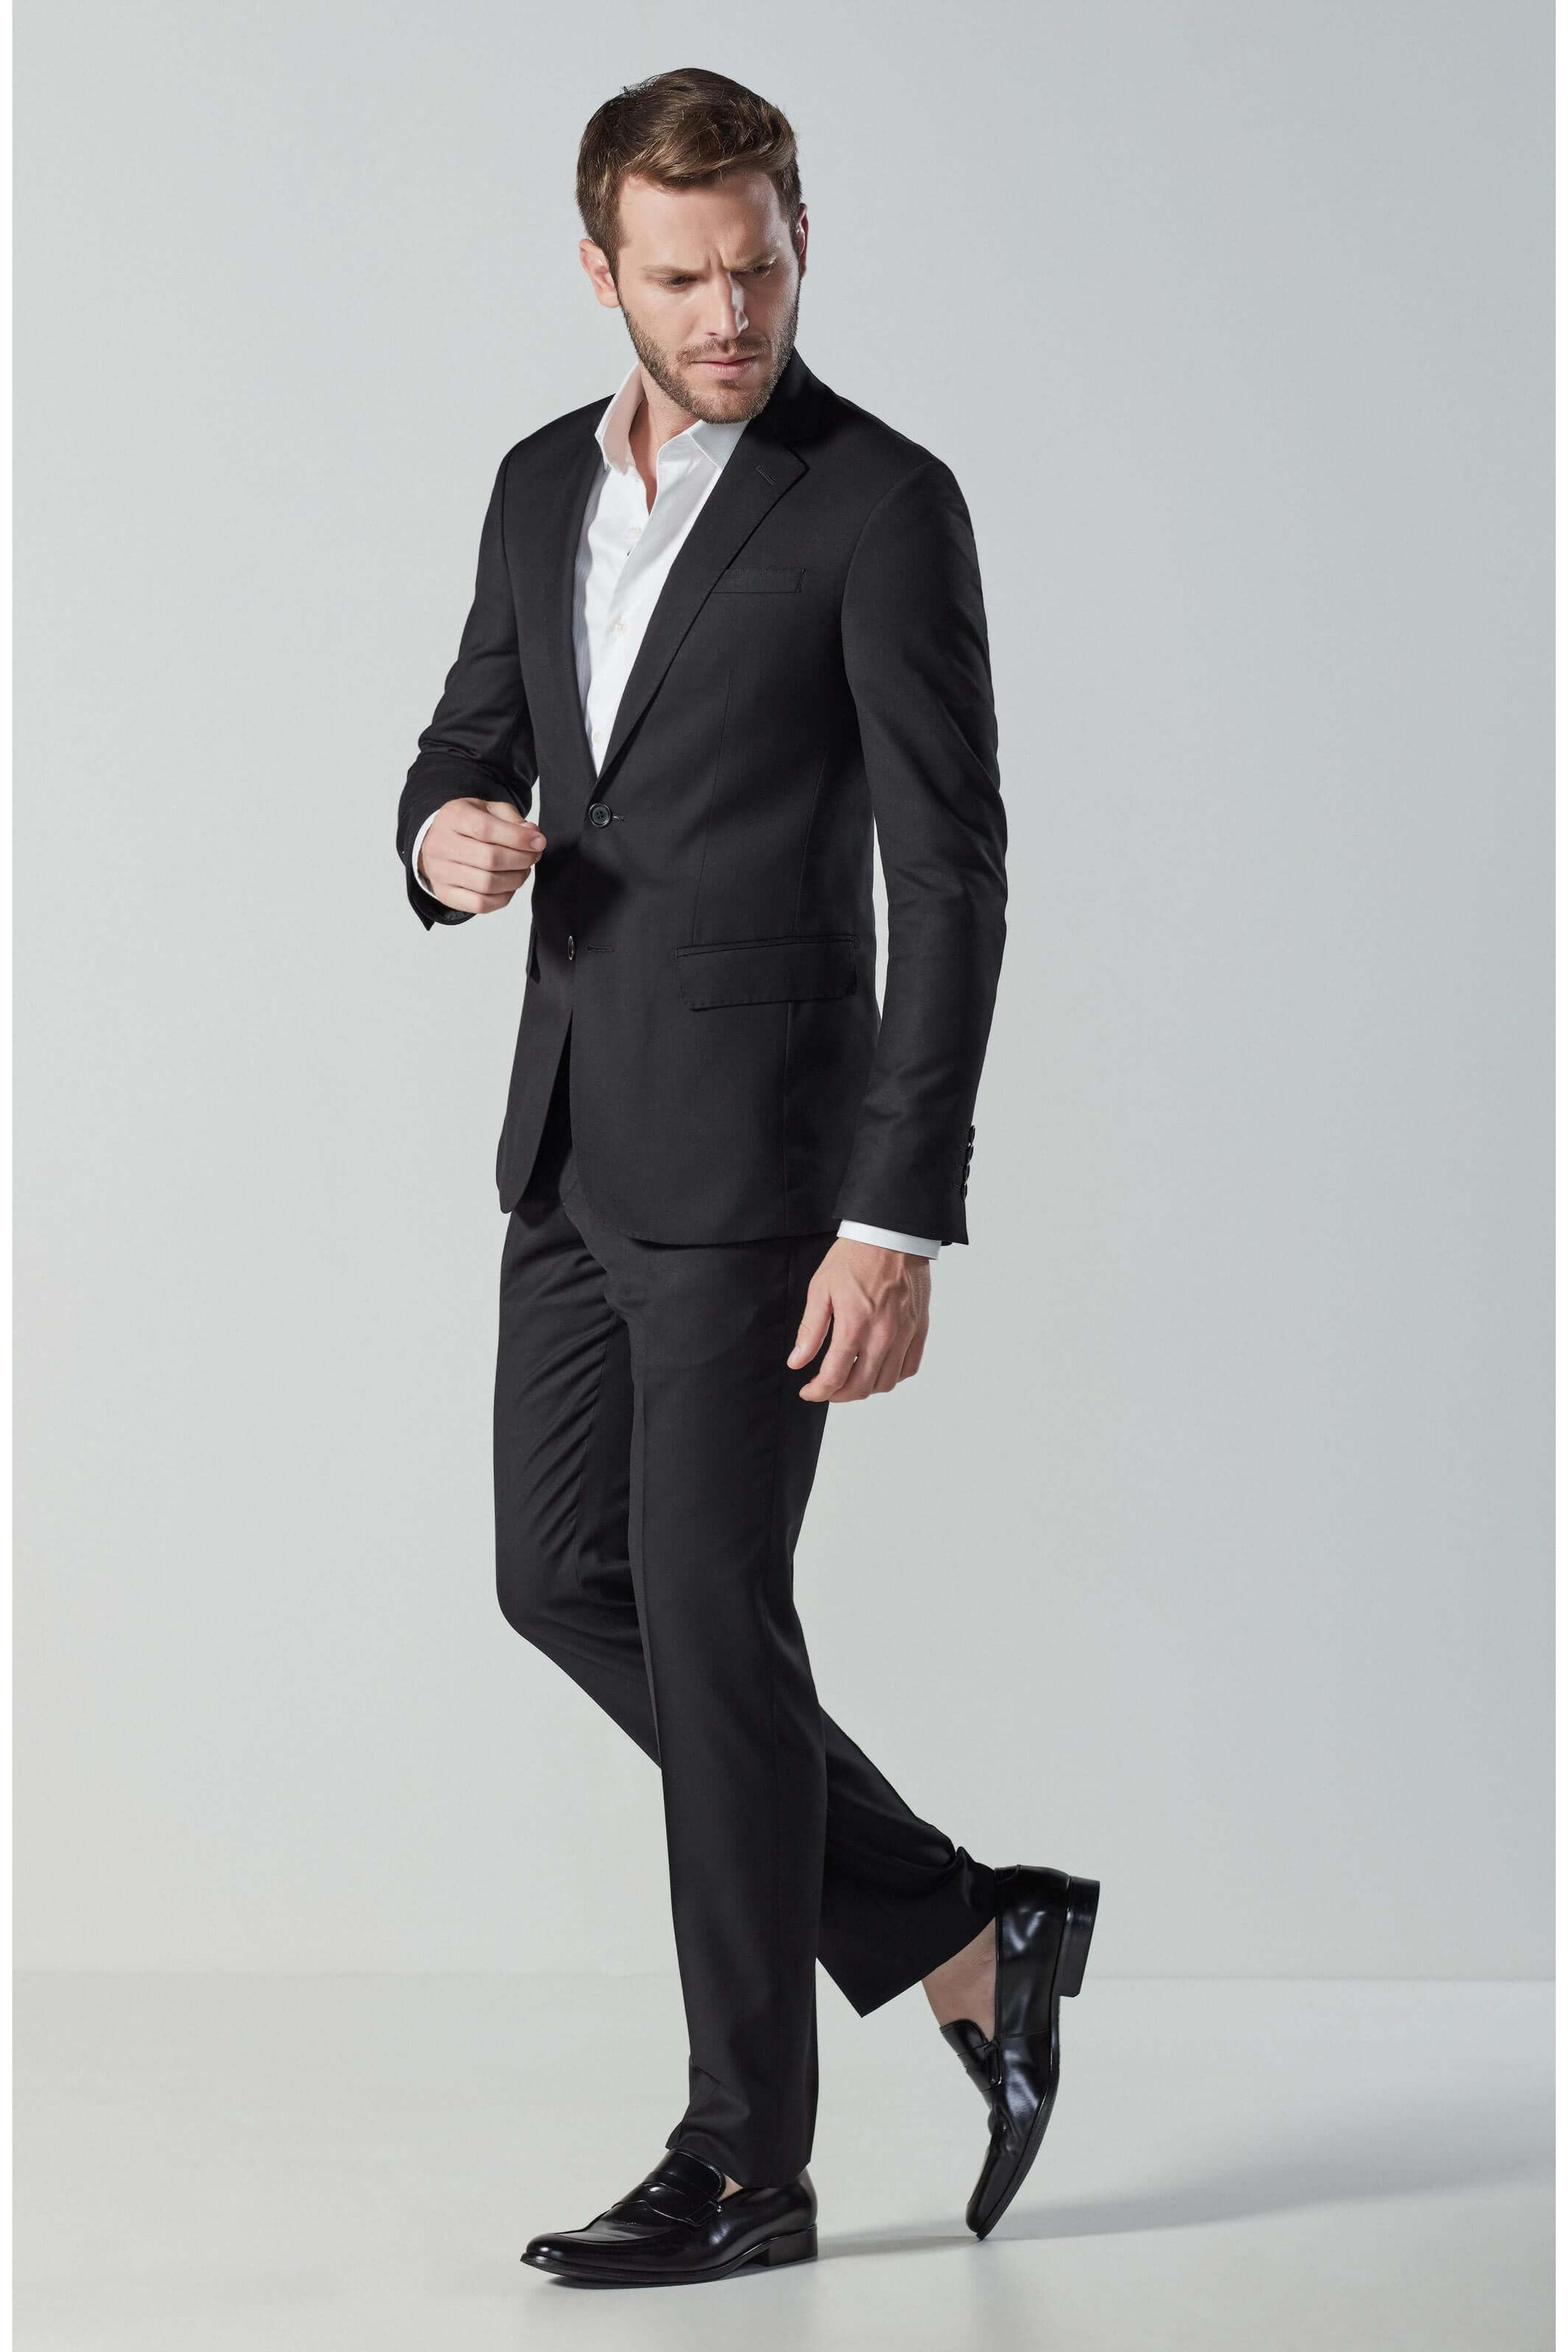 2020DSD20171_987_2-COSTUME-02-BOTOES-SLIM-FIT